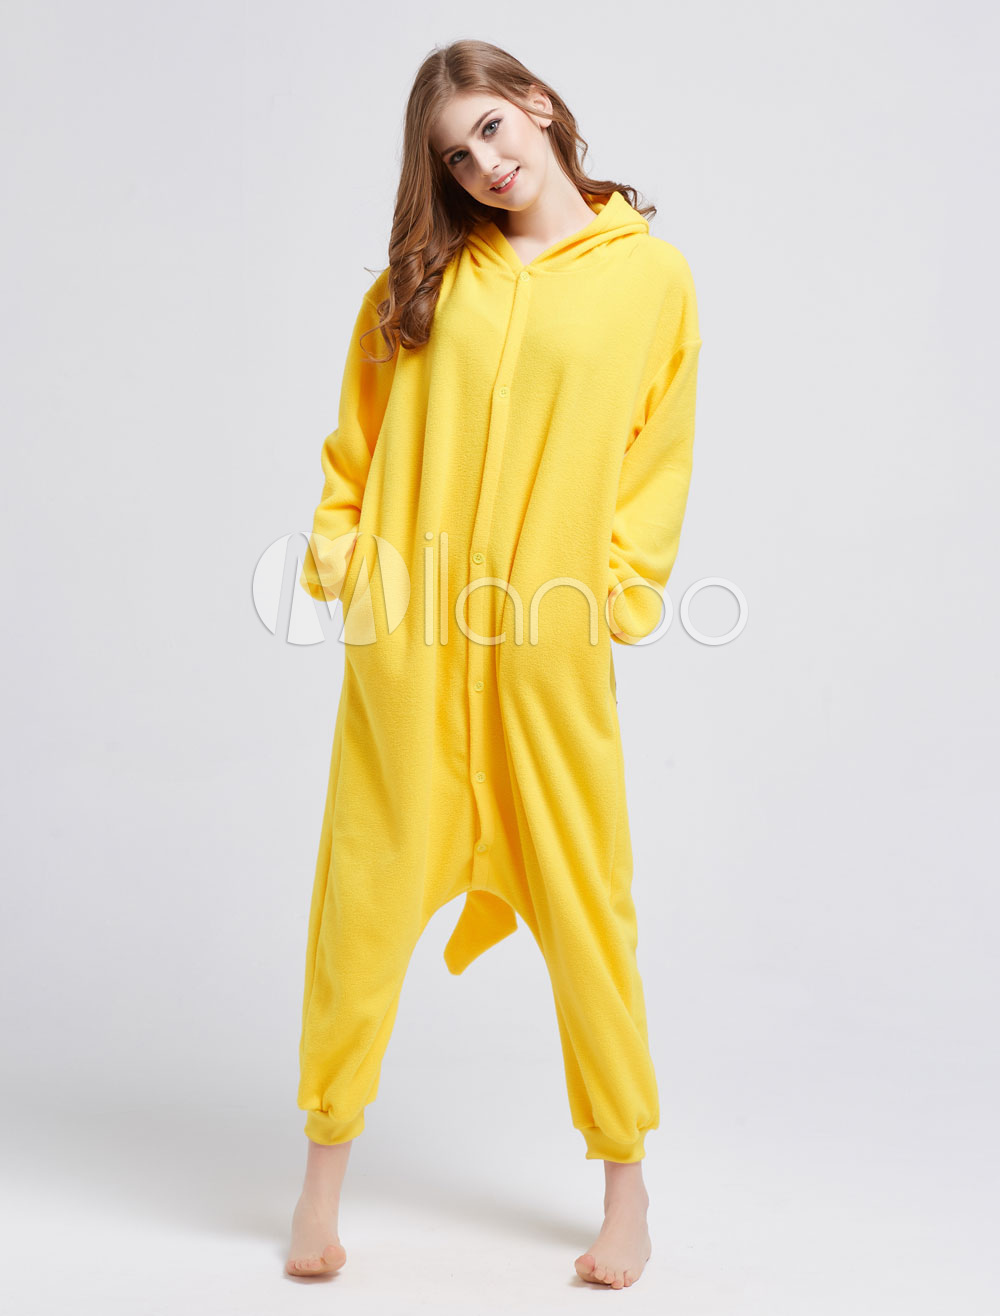 Kigurumi pajamas for sale in Vuheart are manufactured by highly skilled factory who has 6 years experience to produce Japanese animal onesies, and they are one of the most respected and successful kigurumi manufacturer. We pays great attention to detail by using the highest quality material ensuring that your Kigurumi pajamas will last.